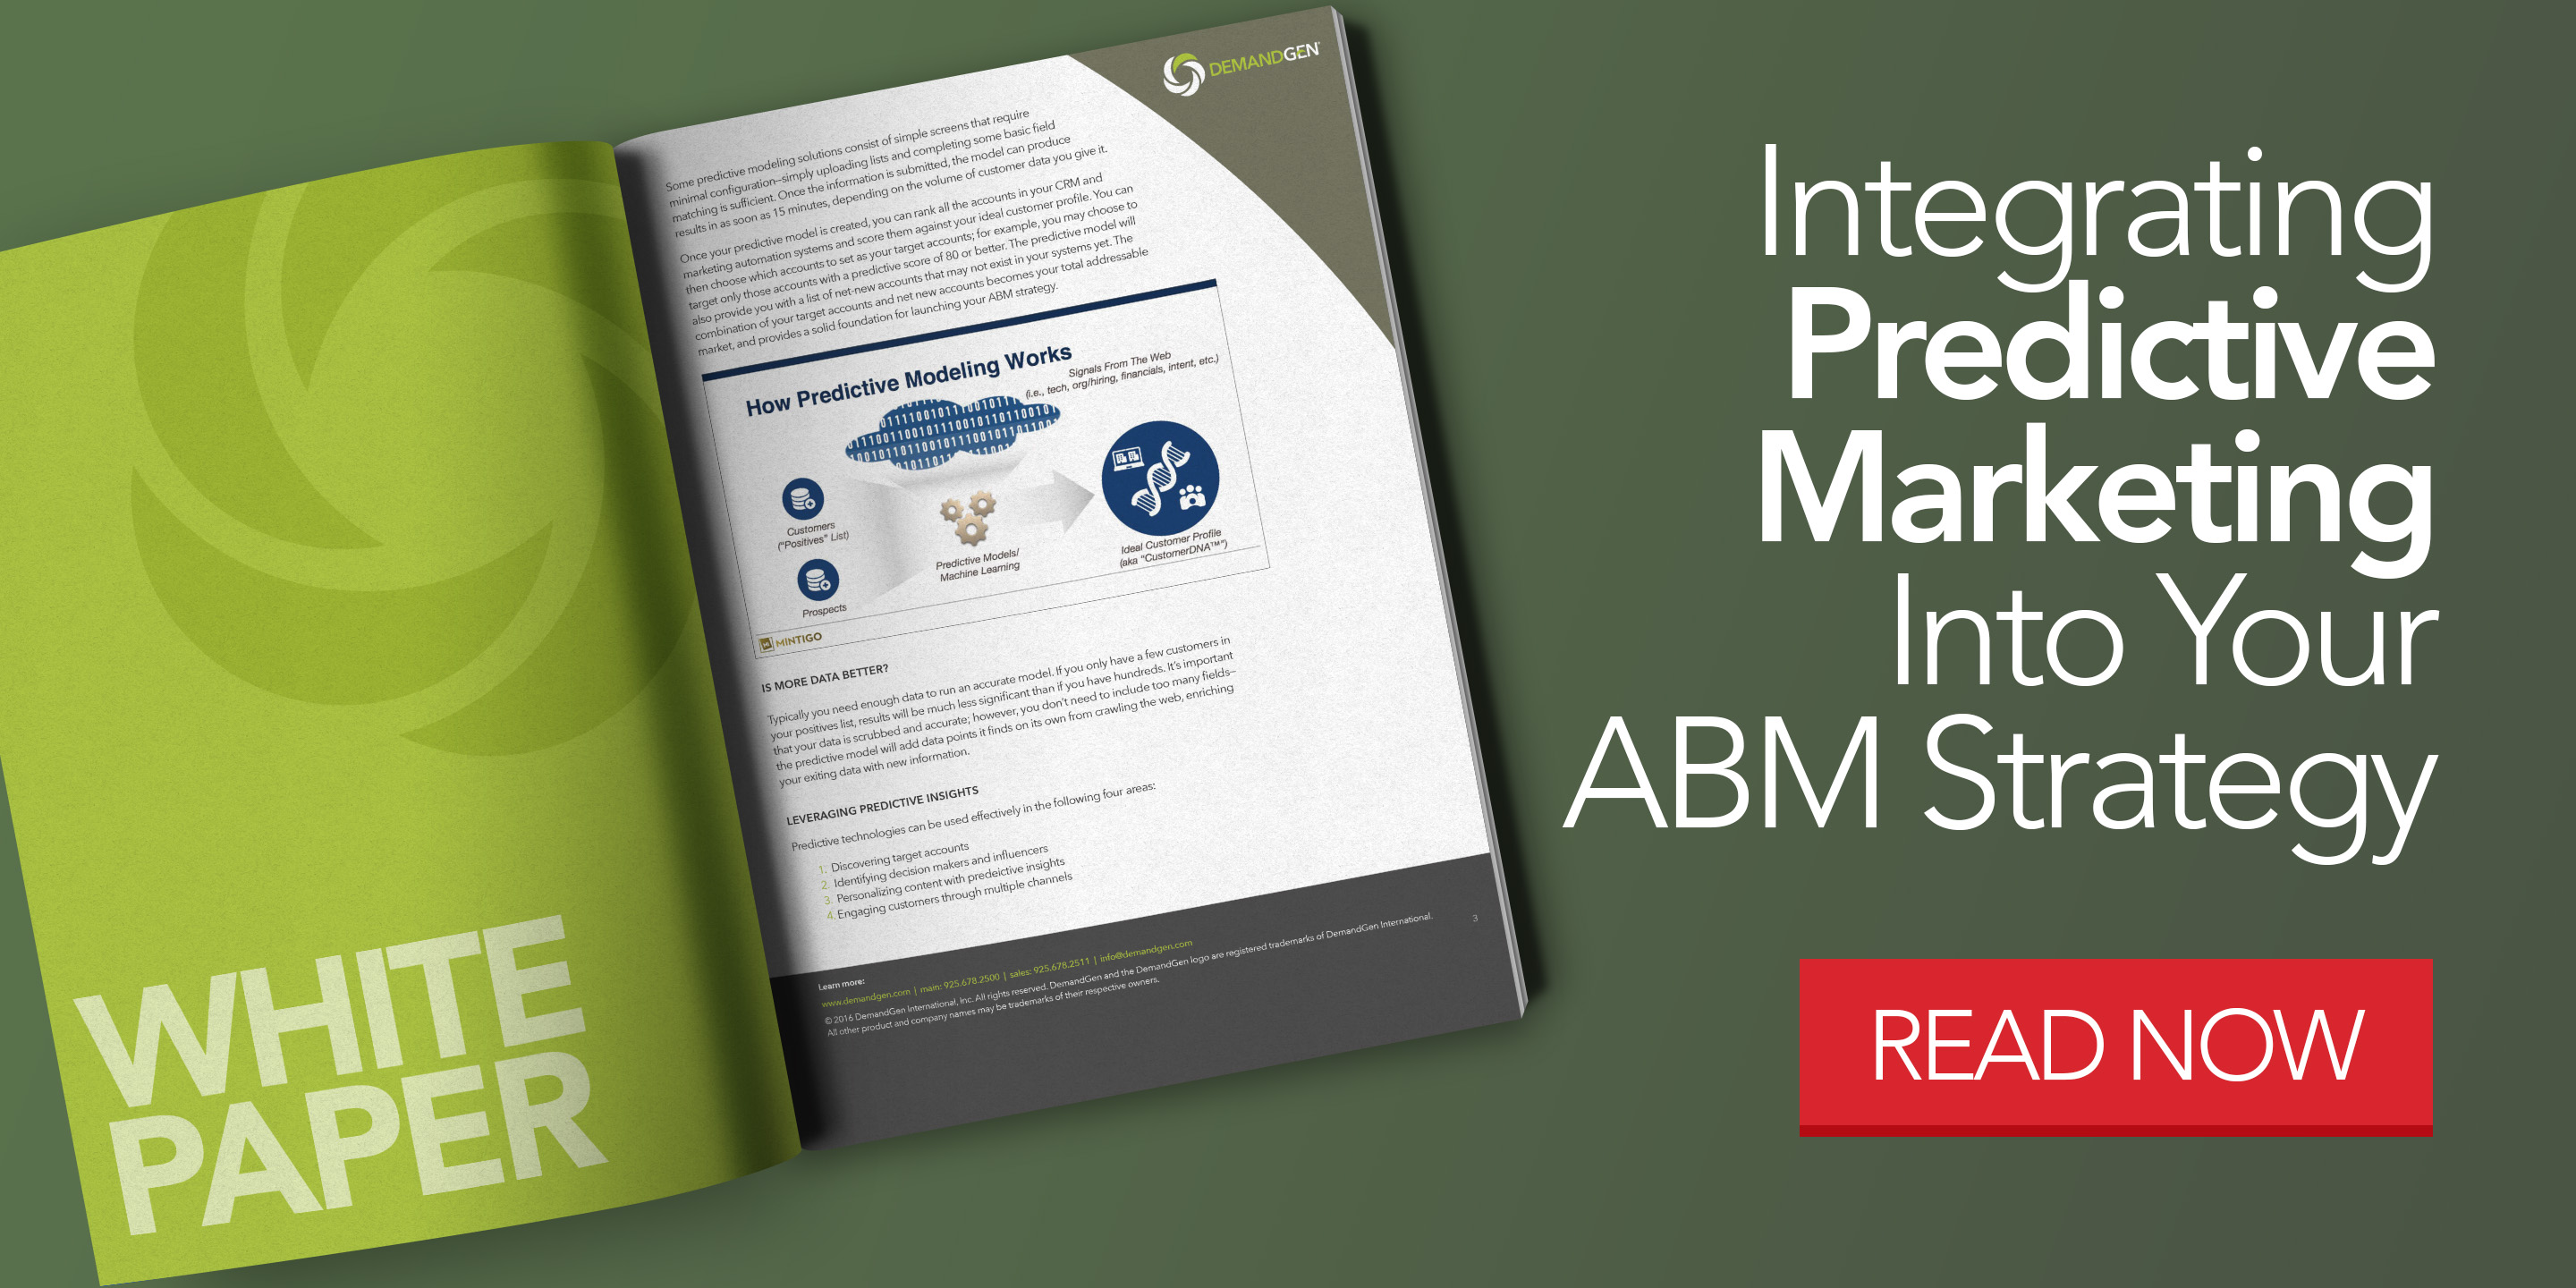 brightinfo-whitepaper-four-ways-to-integrate-predictive-marketing-into-your-abm-strategy